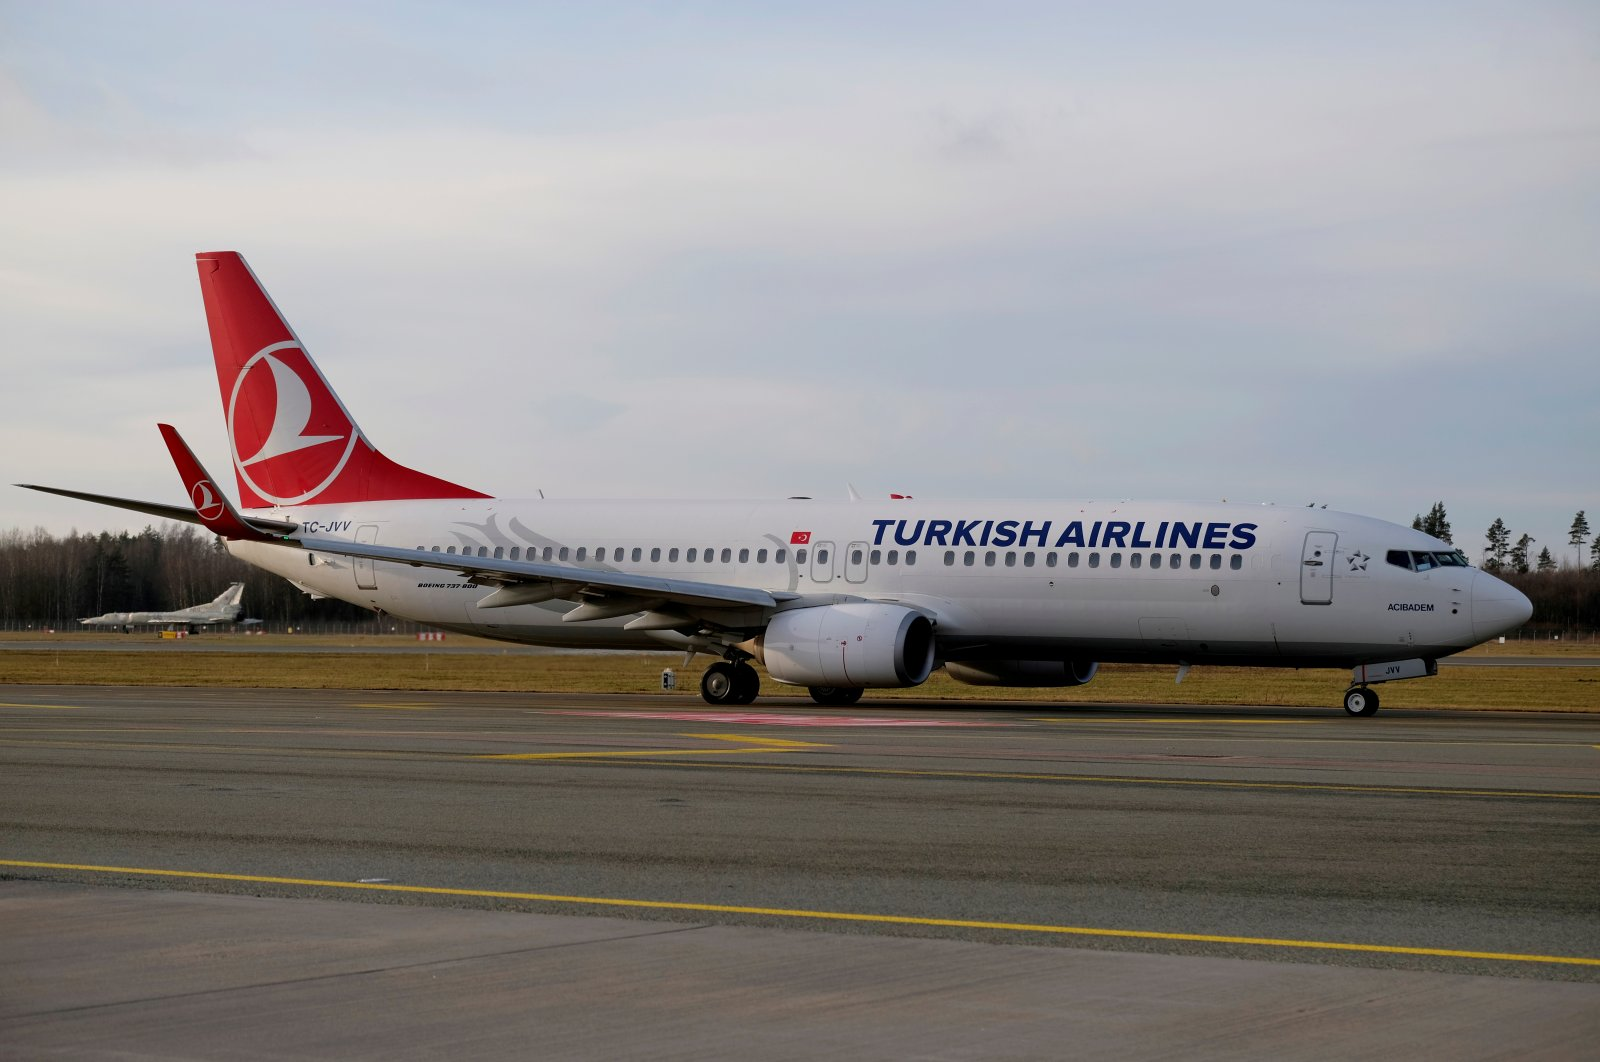 Turkish Airlines Boeing 737-800 plane TC-JVV taxies to take-off in Riga International Airport, Latvia, Jan. 17, 2020. (Reuters Photo)